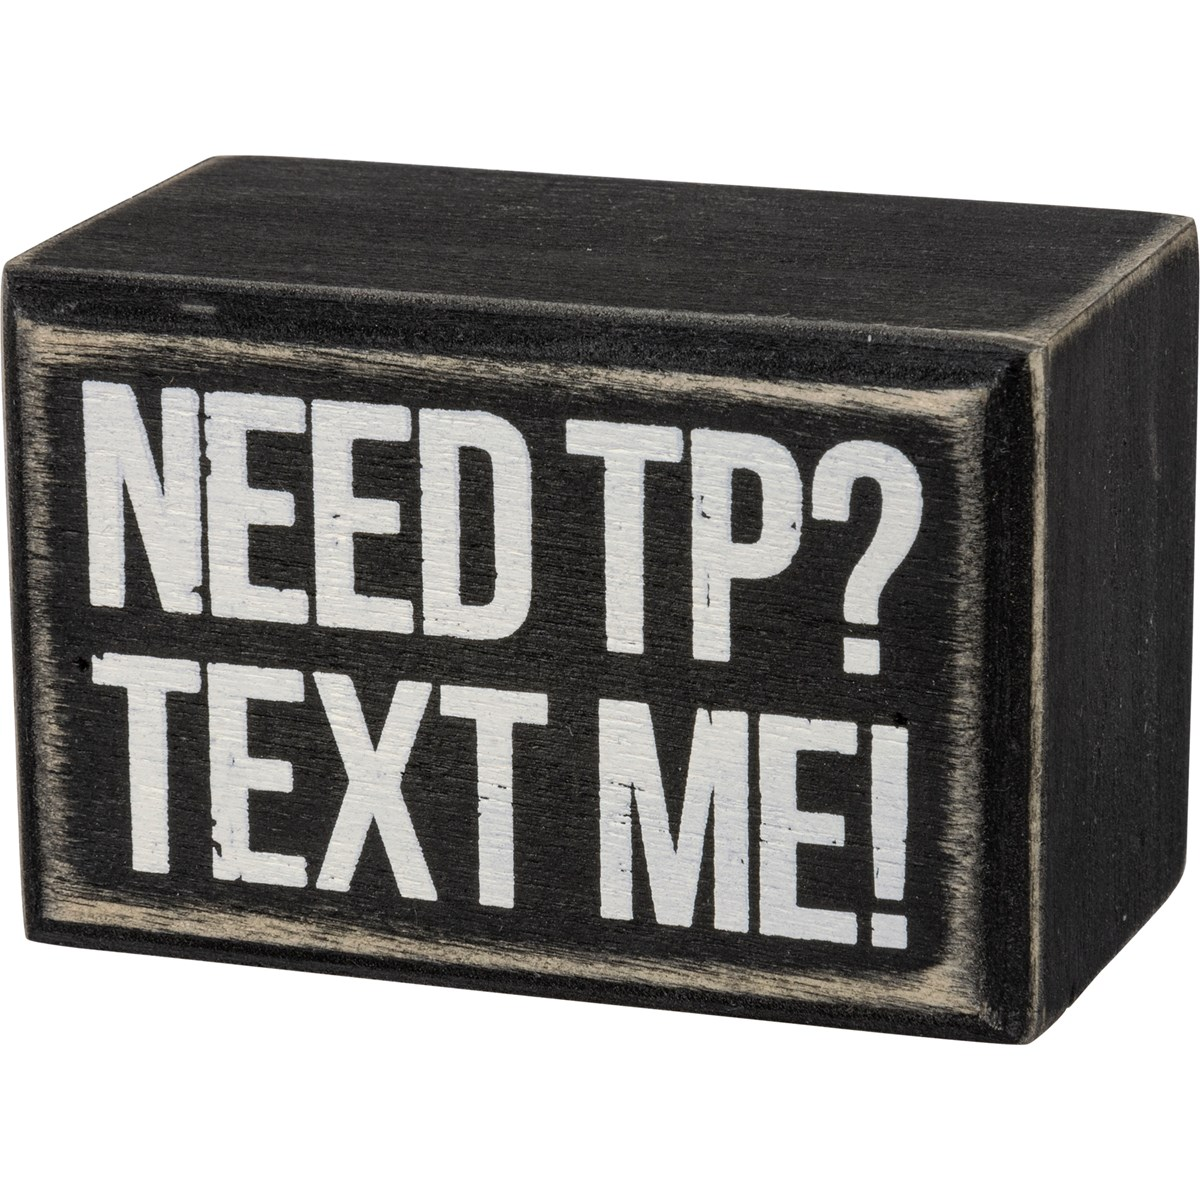 "Box Sign - Text Me - 3"" x 2"" x 1.75"" - Wood"